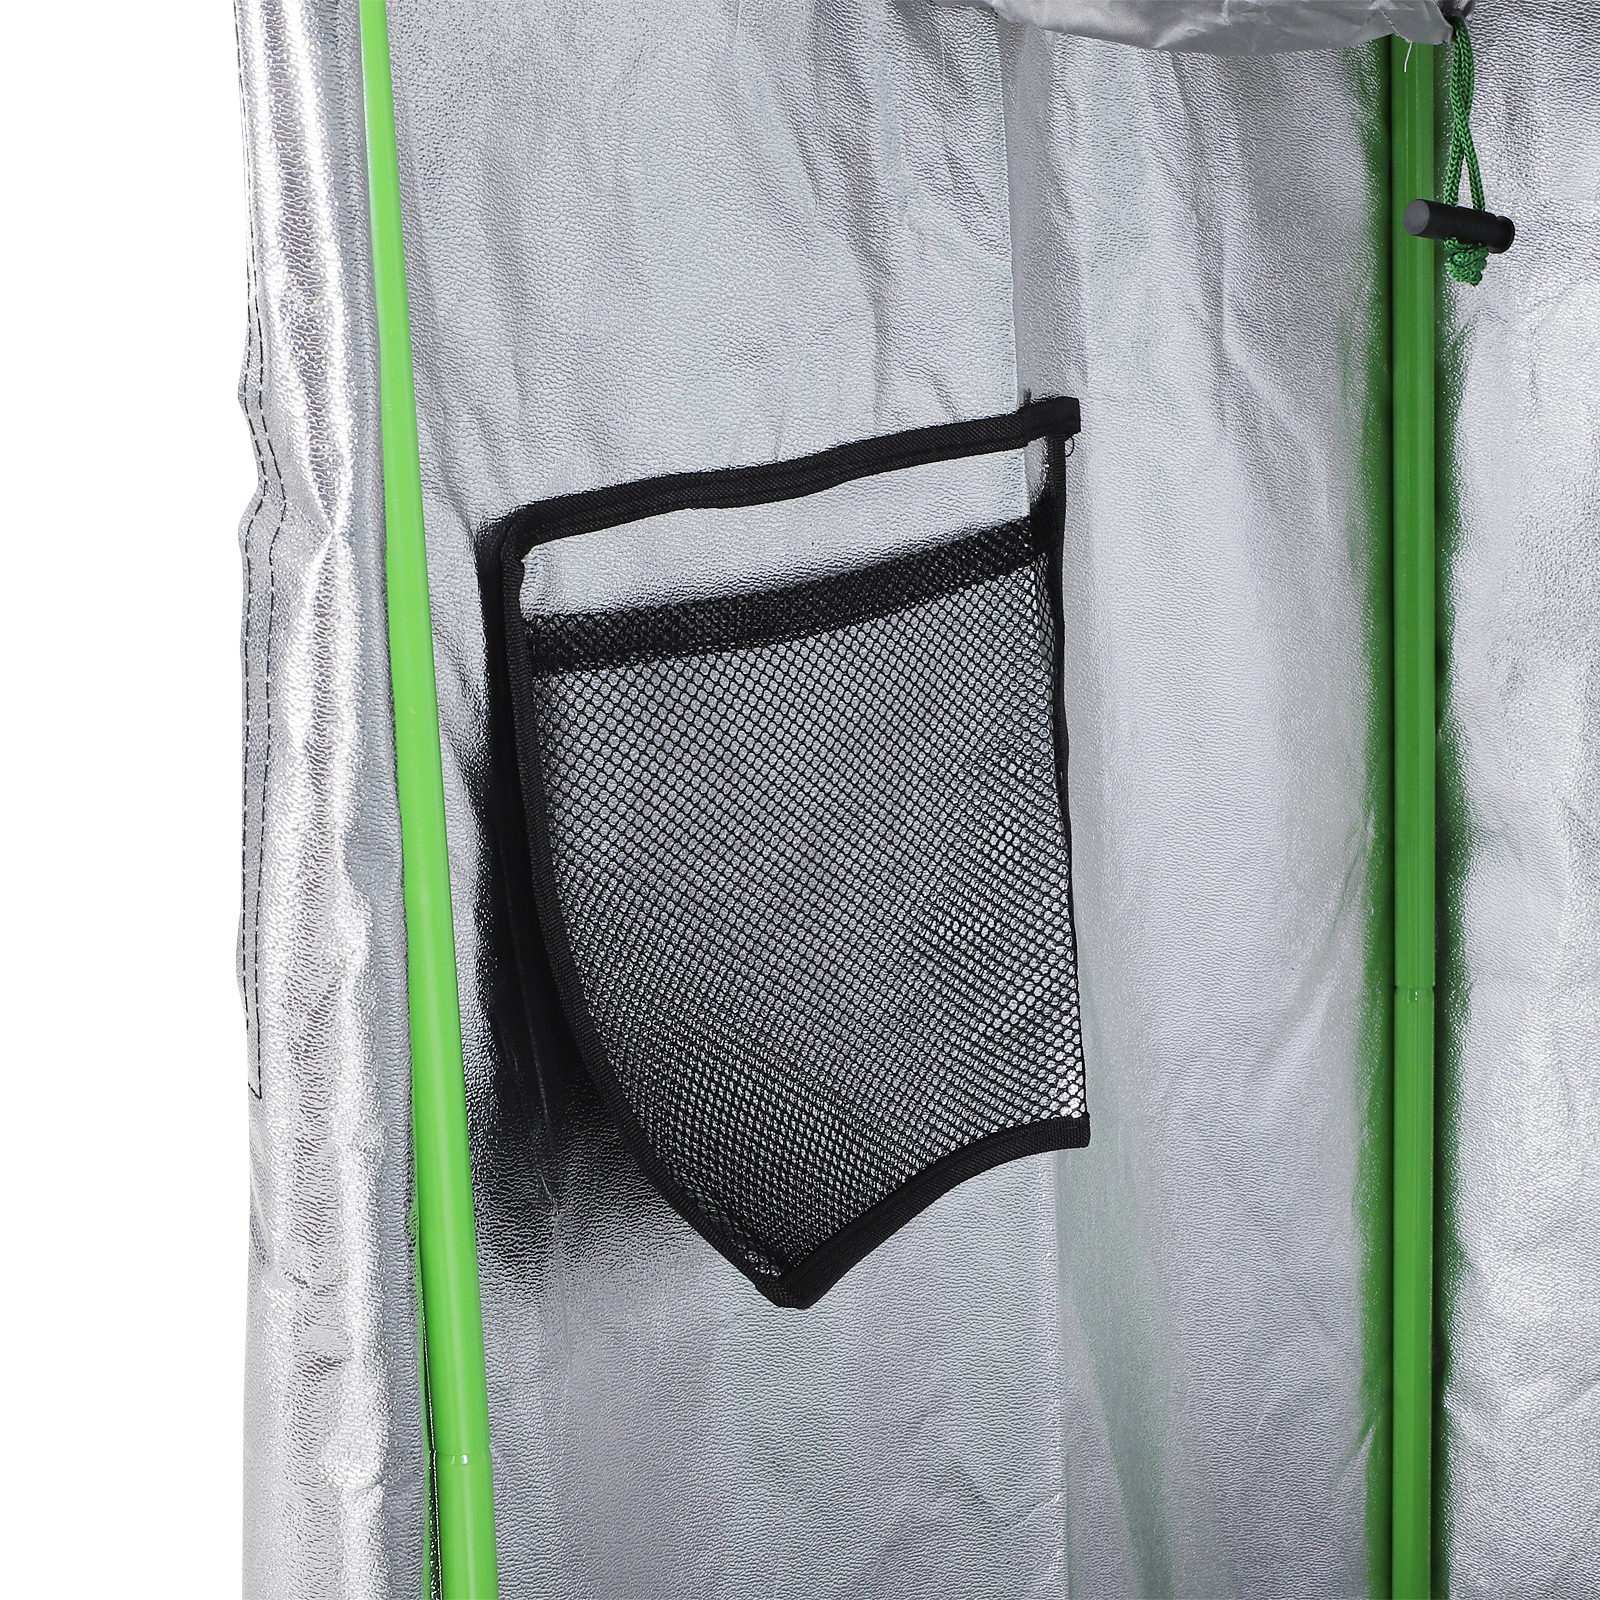 Hydroponic-Plant-Grow-Tent-Indoor-Obeservation-Window-Floor-Tray-Steel-Pole-600D thumbnail 22